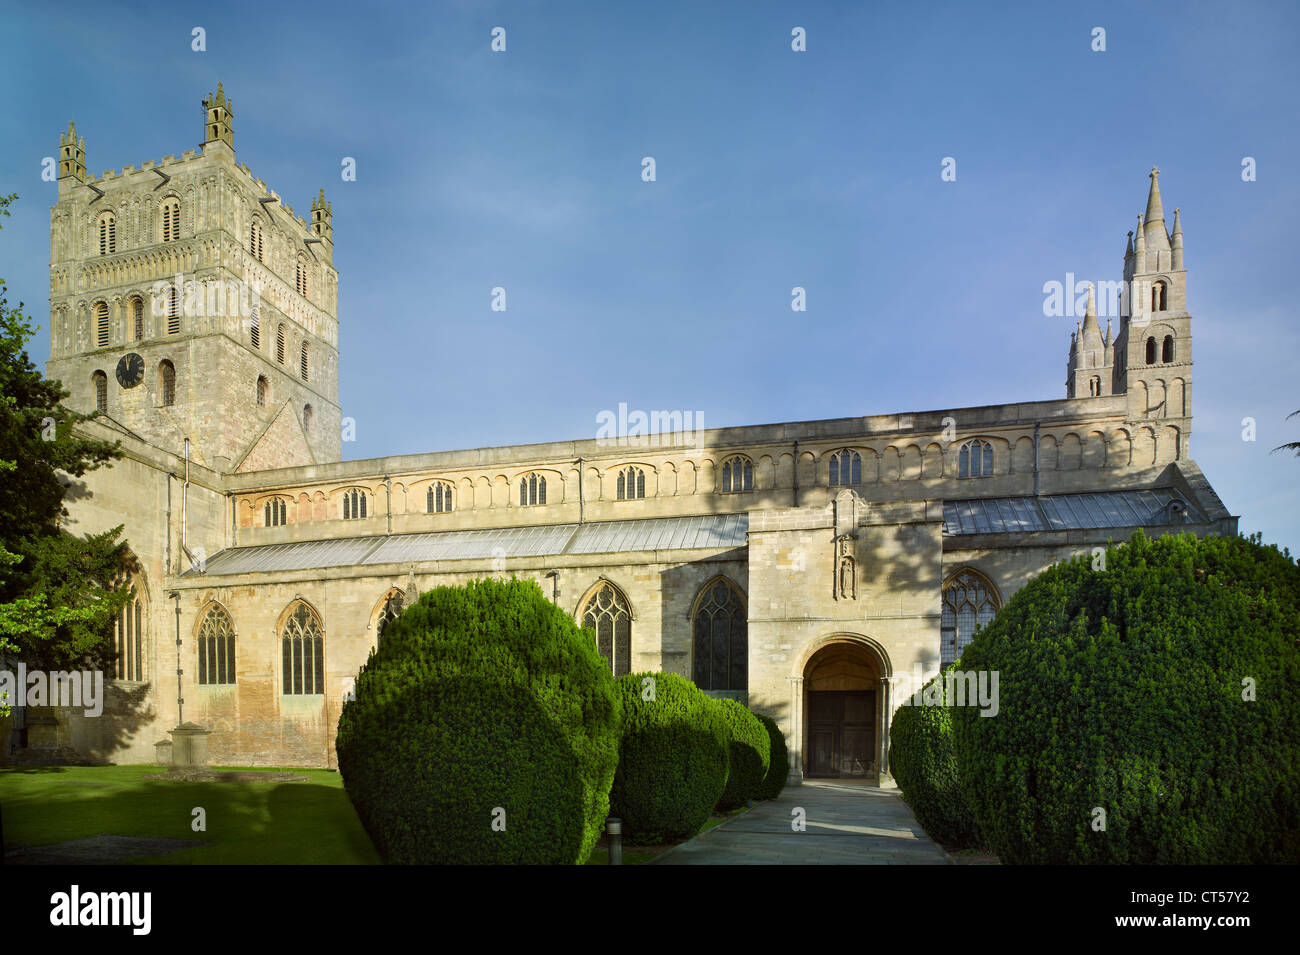 Tewkesbury Abbey from north, Norman architecture - Stock Image